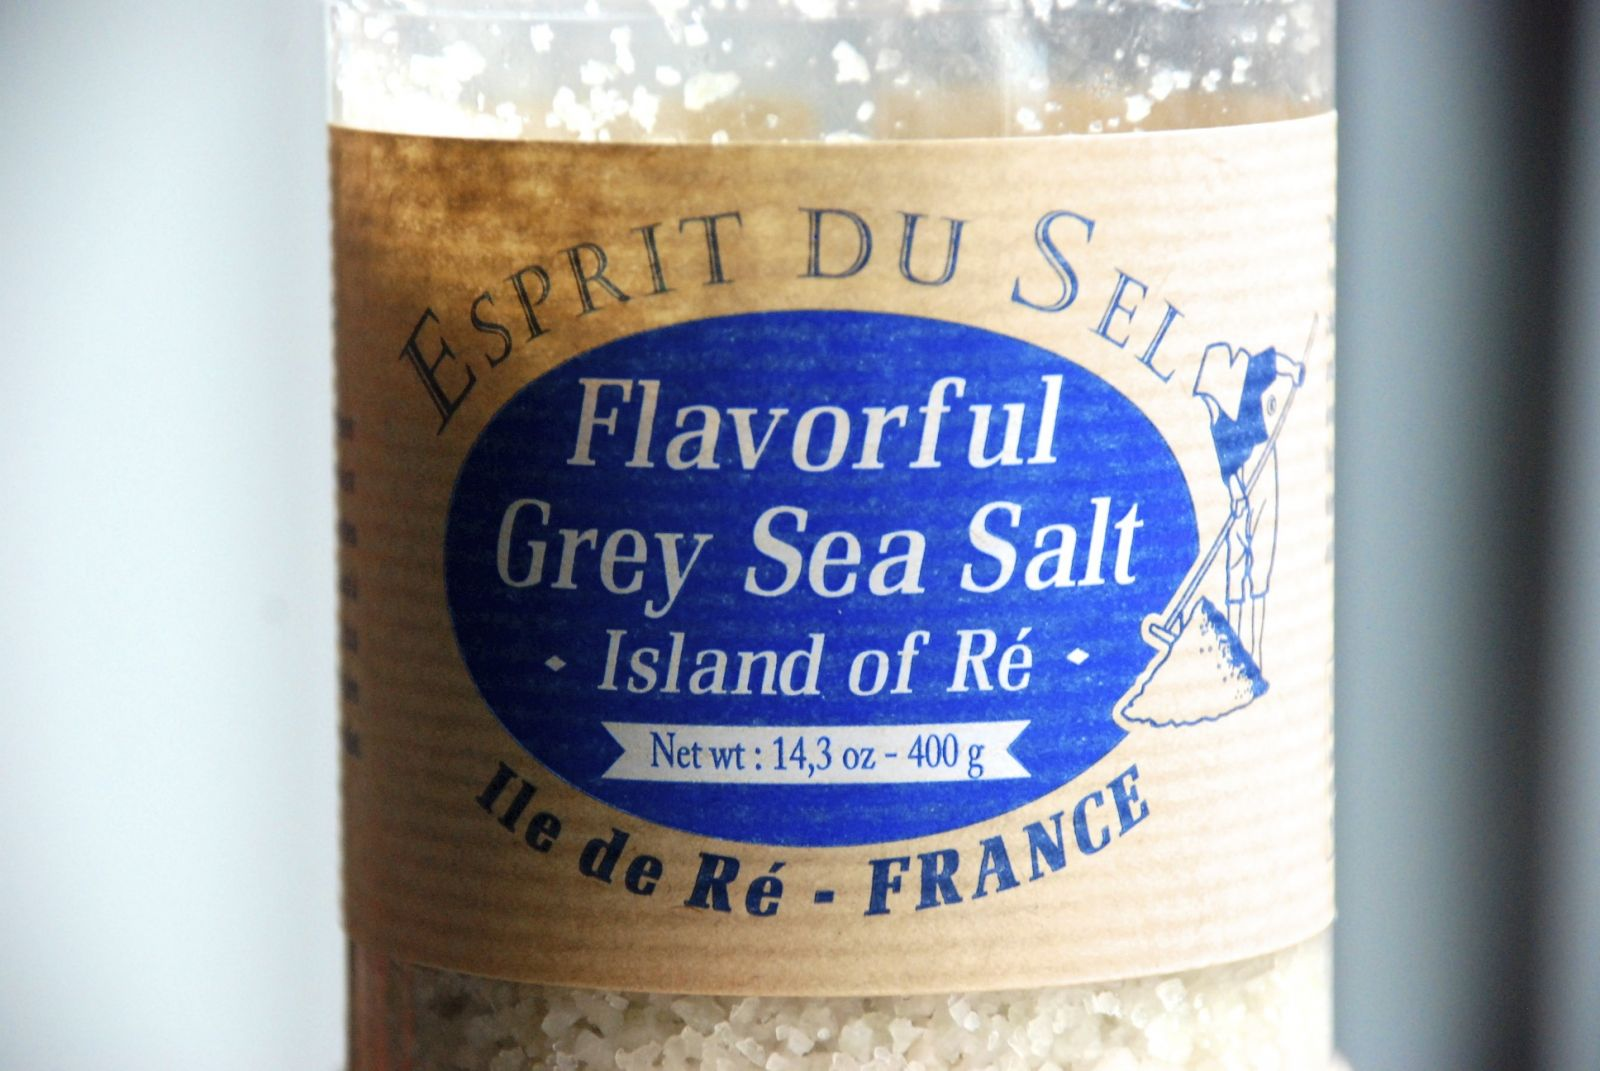 Sea salt in a bottle